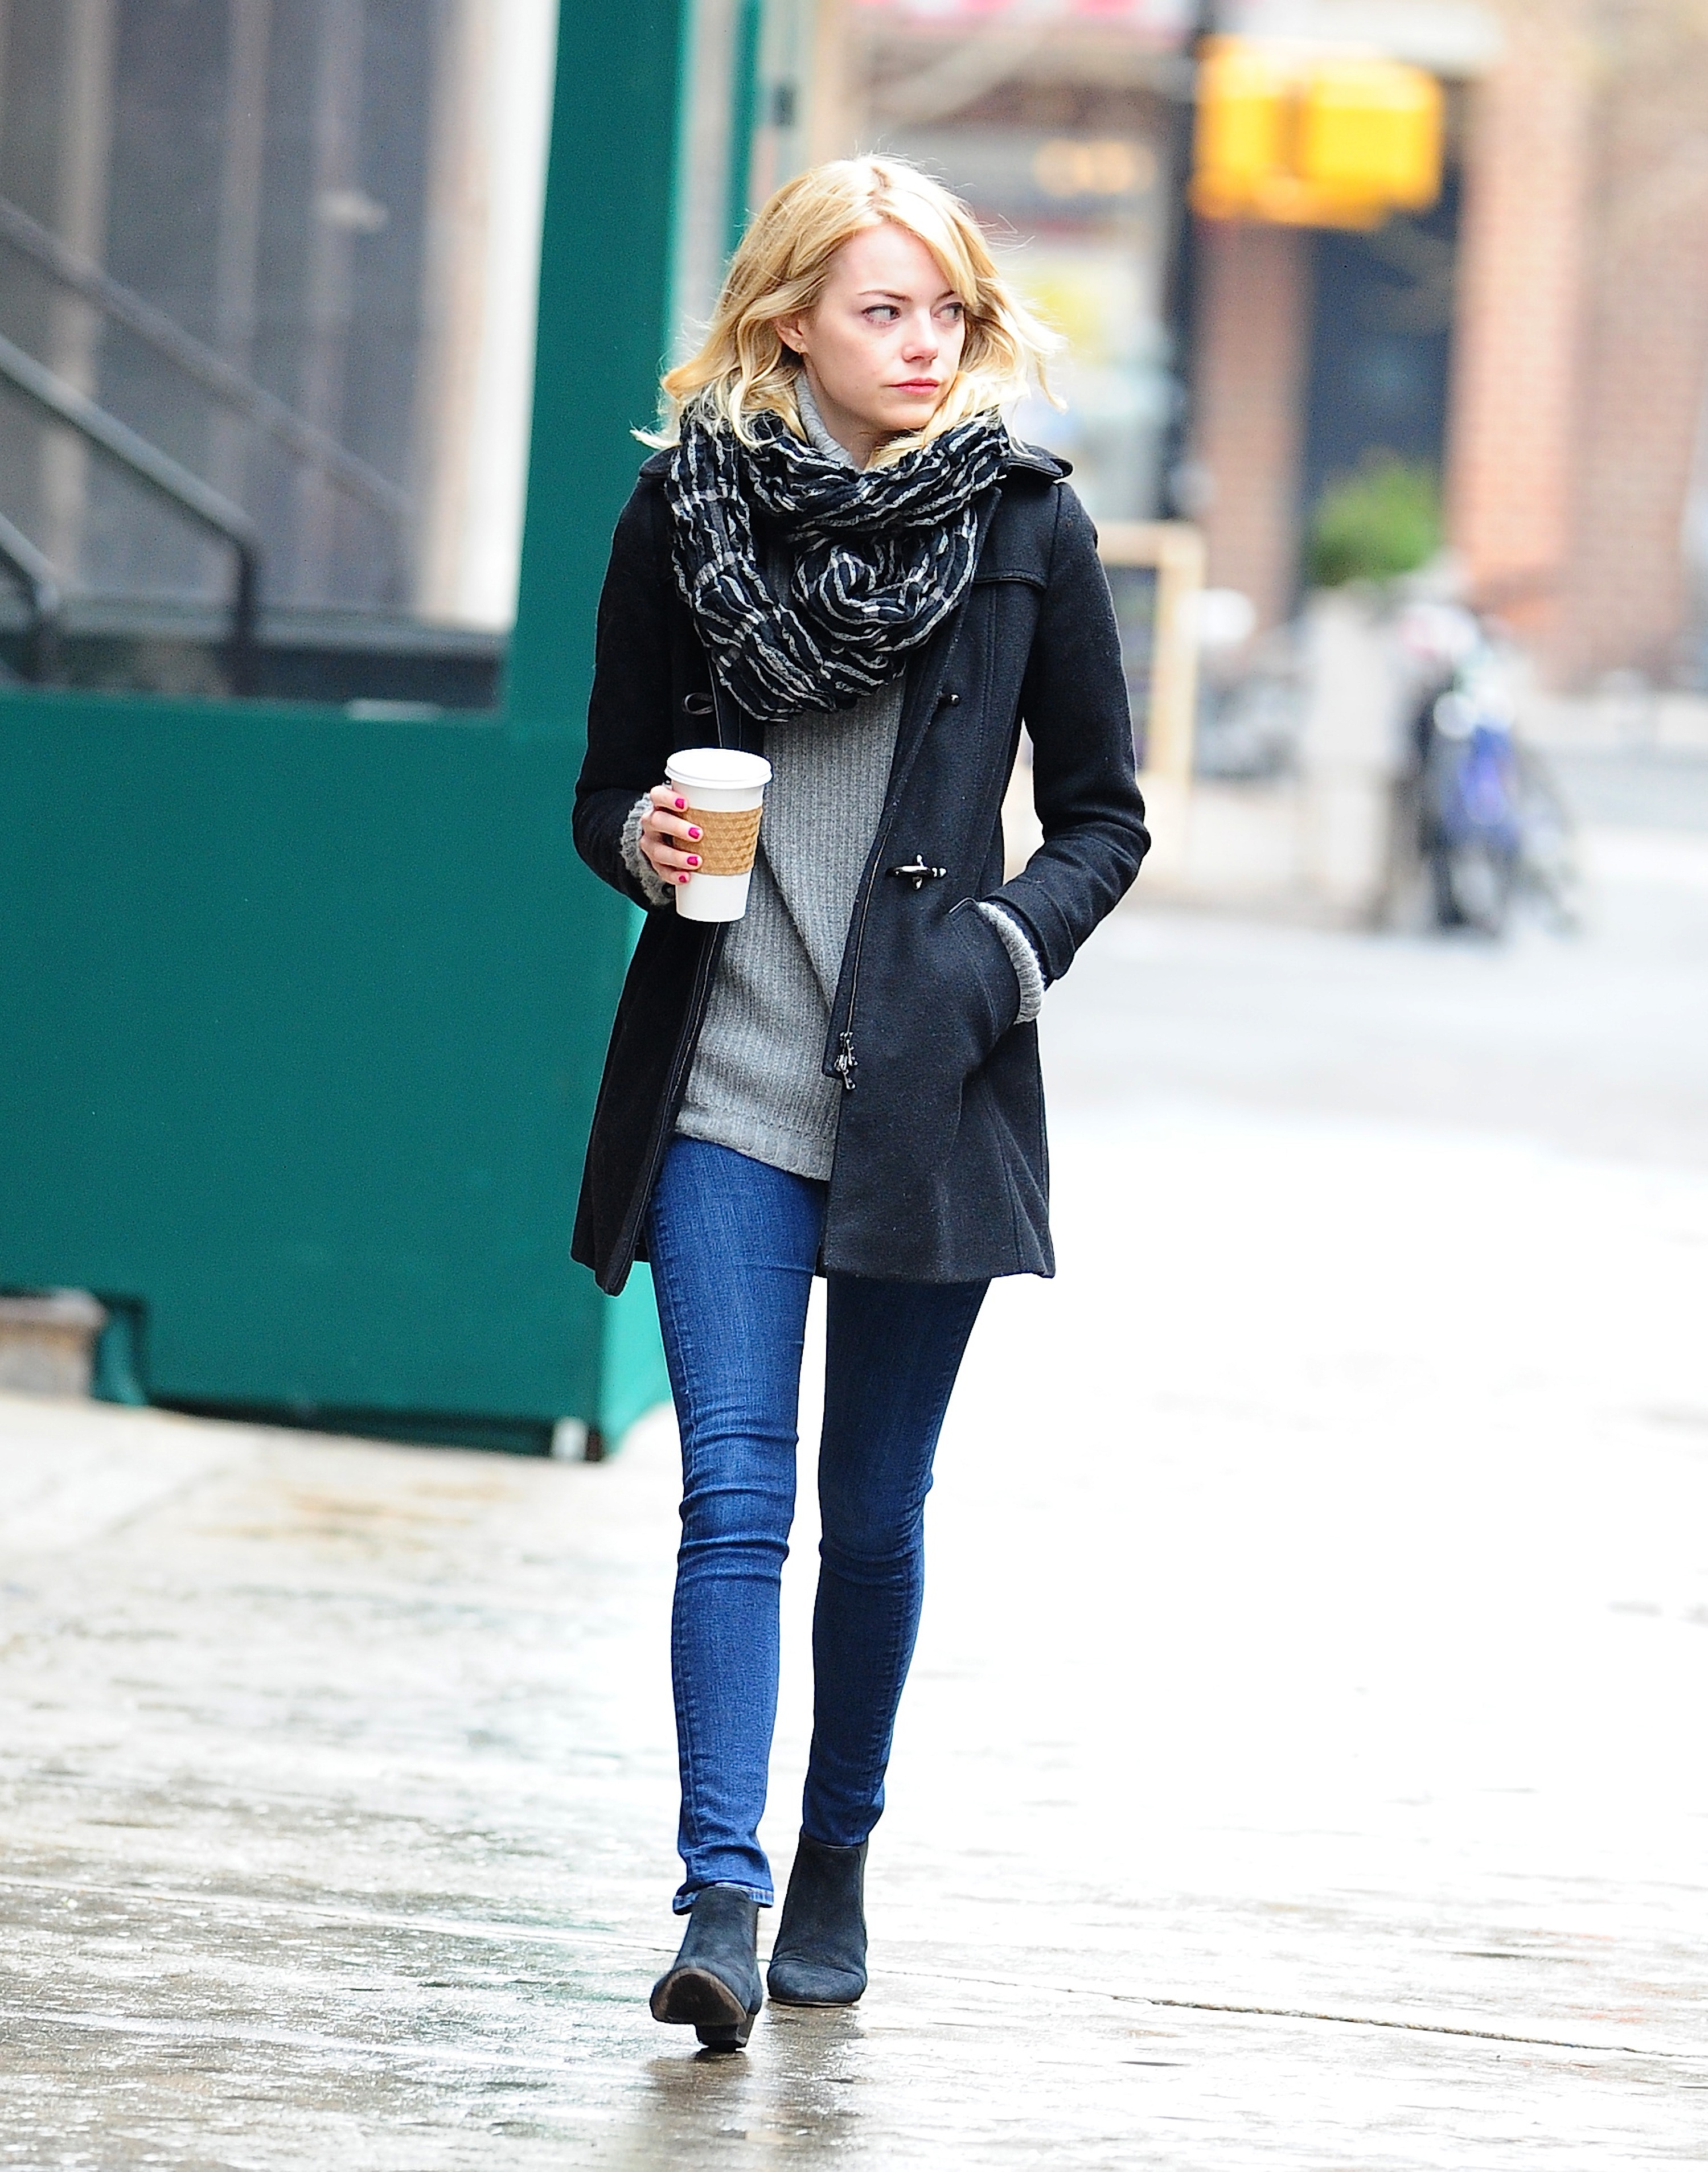 Emma Stone Took A Walk On The Wet Streets Of Nyc In A